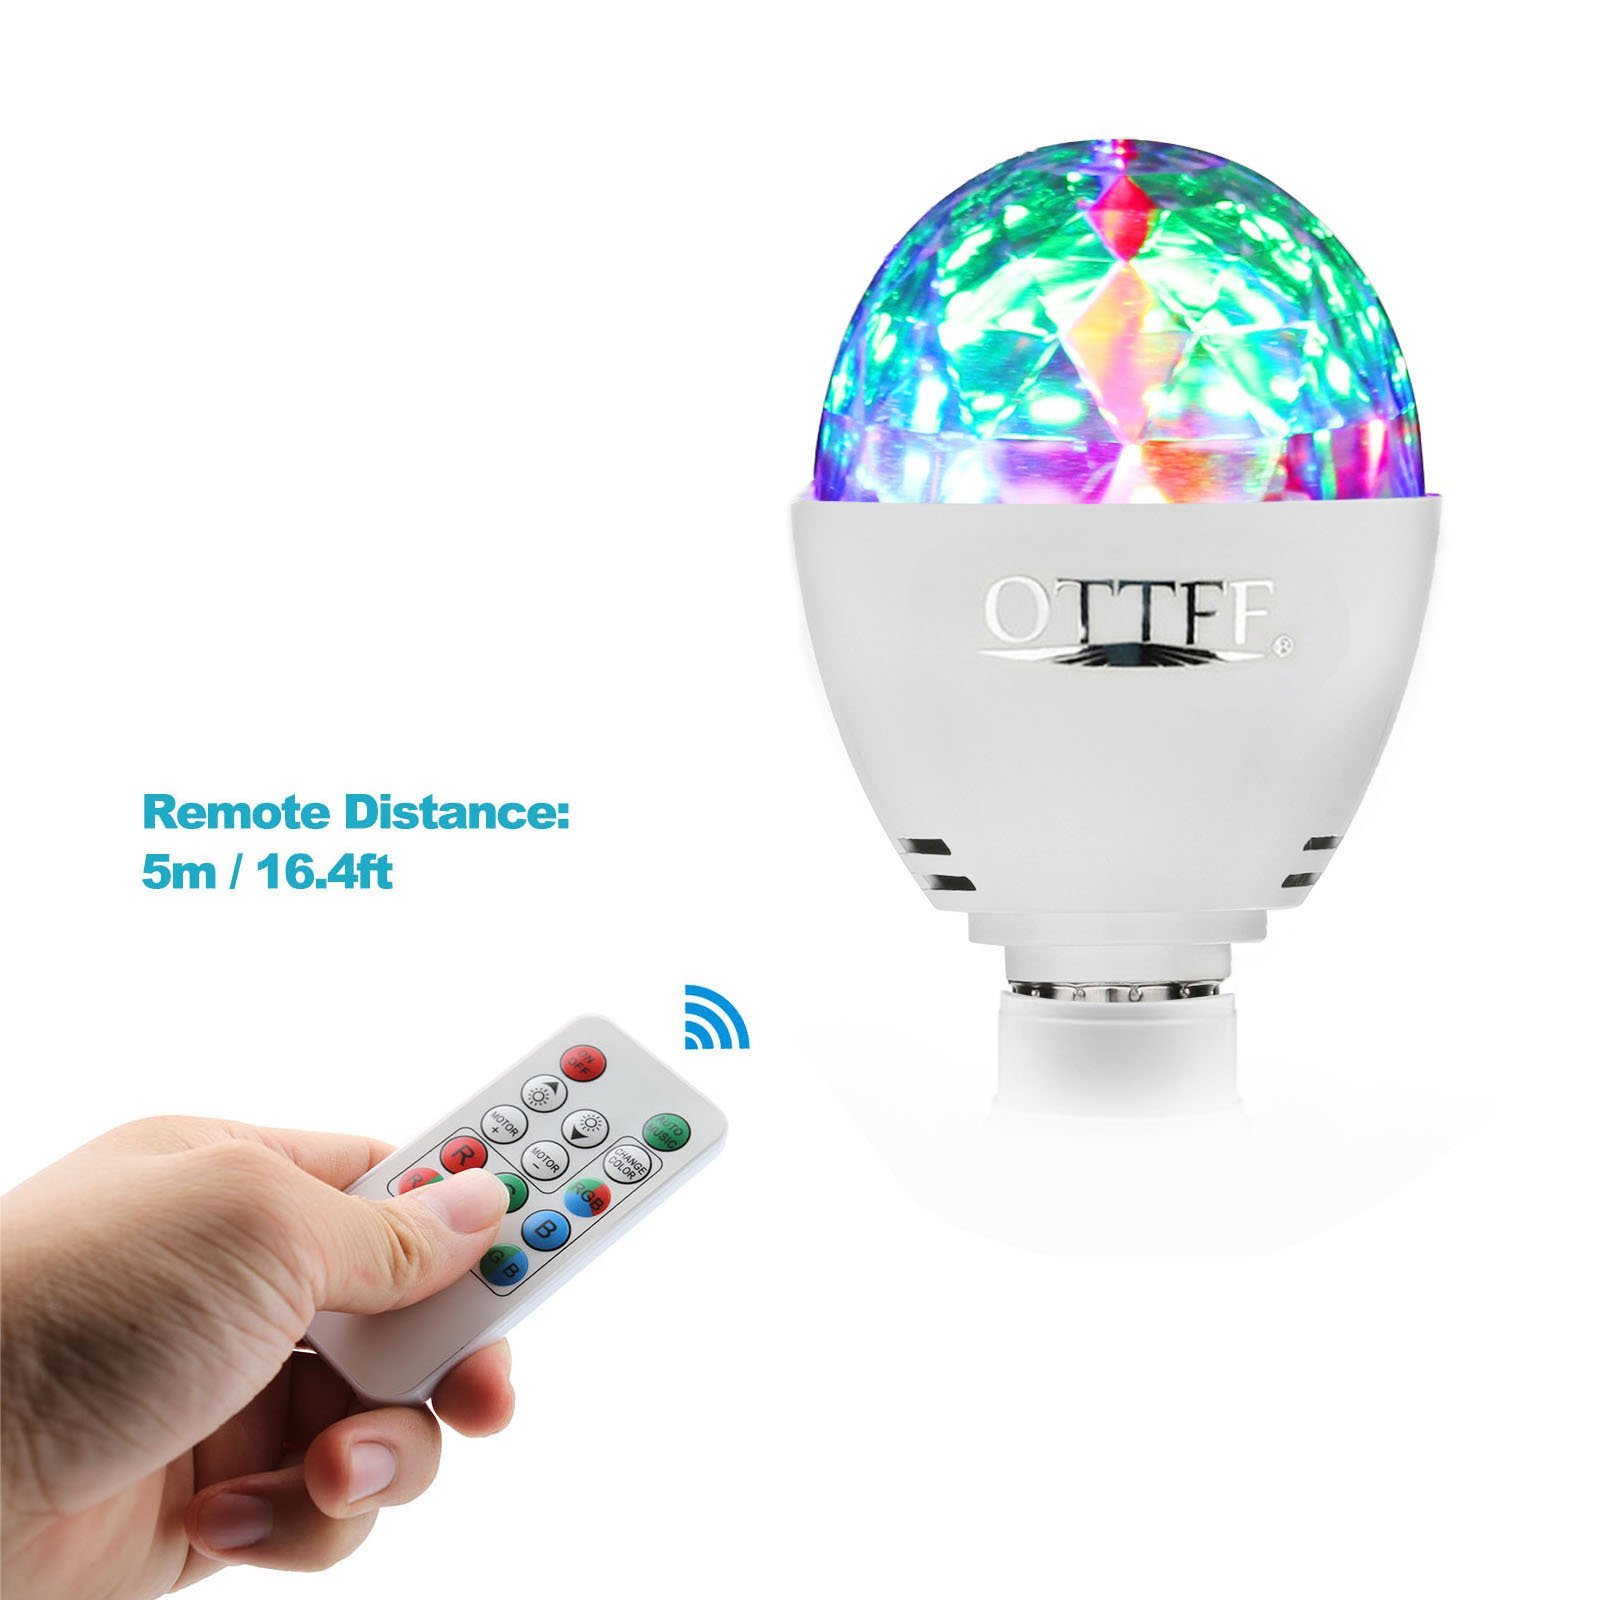 OTTFF 3W E27 Disco Ball Lamp RGB Rotating LED Sound Activated Strobe Lights Party Bulb Stage Light for Family Parties,Birthday,Desk Lamp with Remote Control by OTTFF (Image #10)